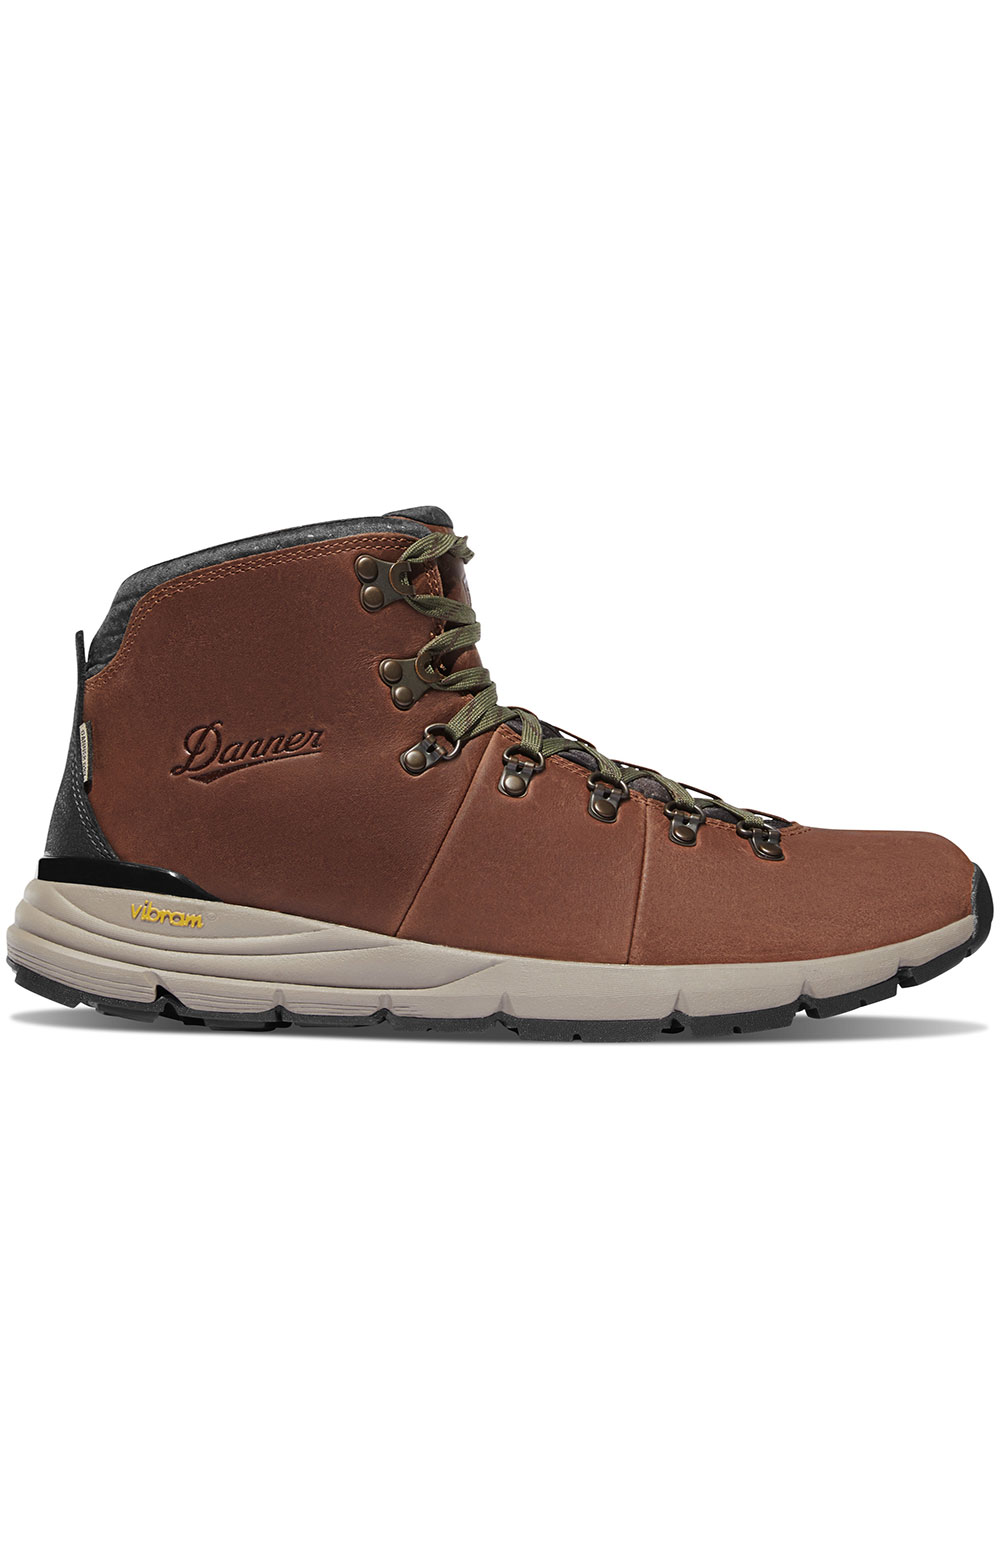 (62272) Mountain 600 Boots - Walmut/Green 4